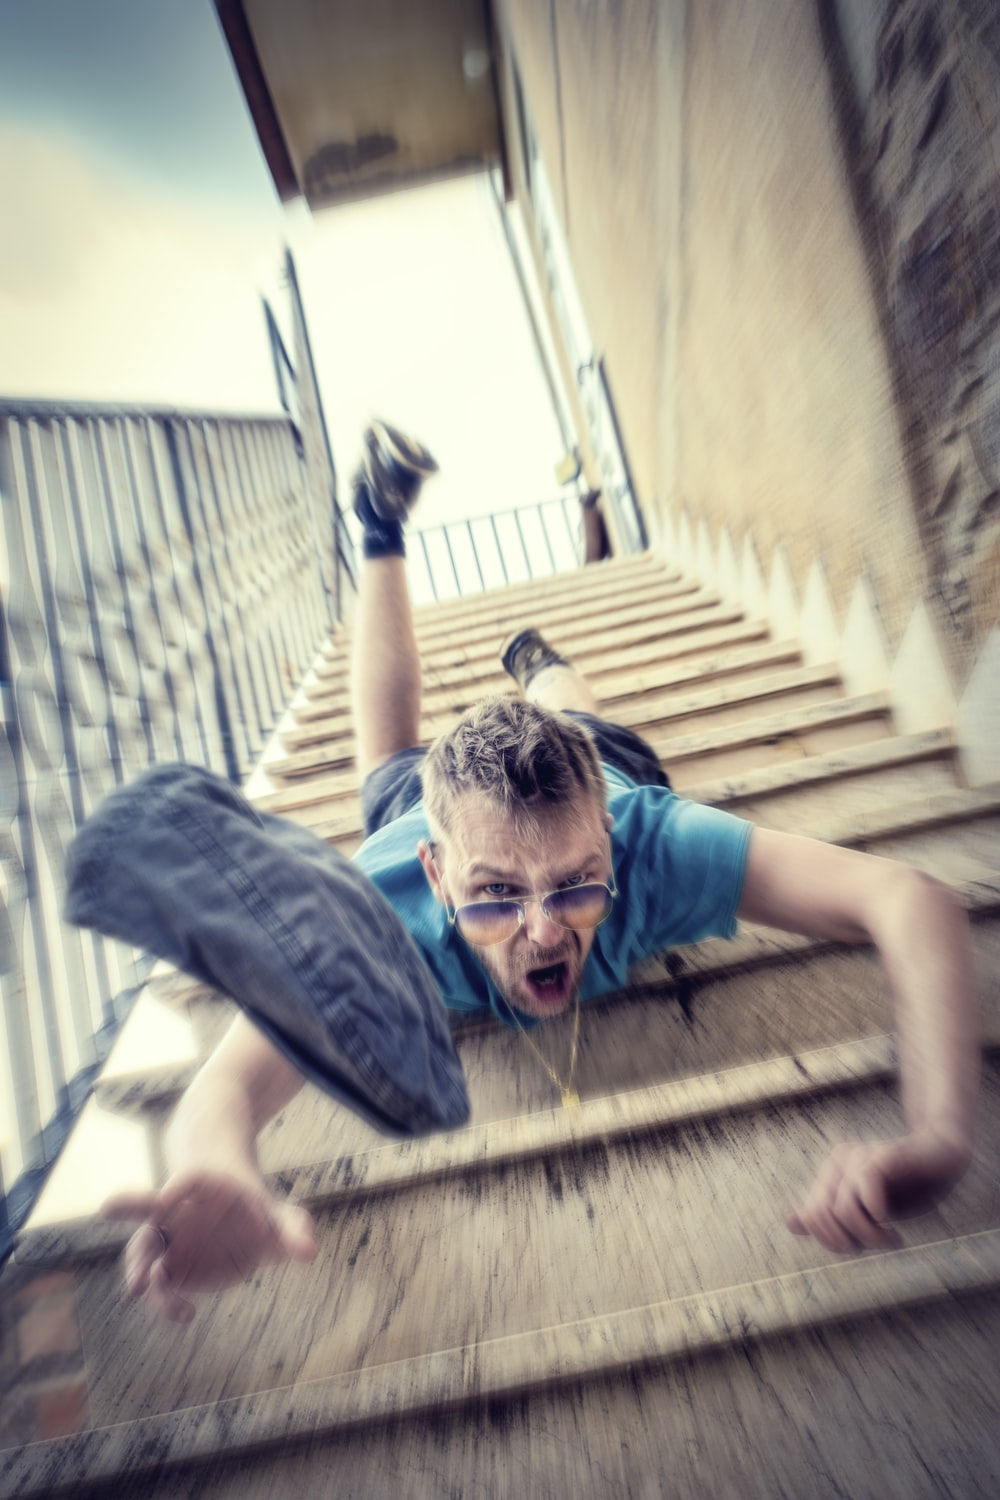 man in blue t-shirt and blue denim shorts sitting on concrete stairs during daytime